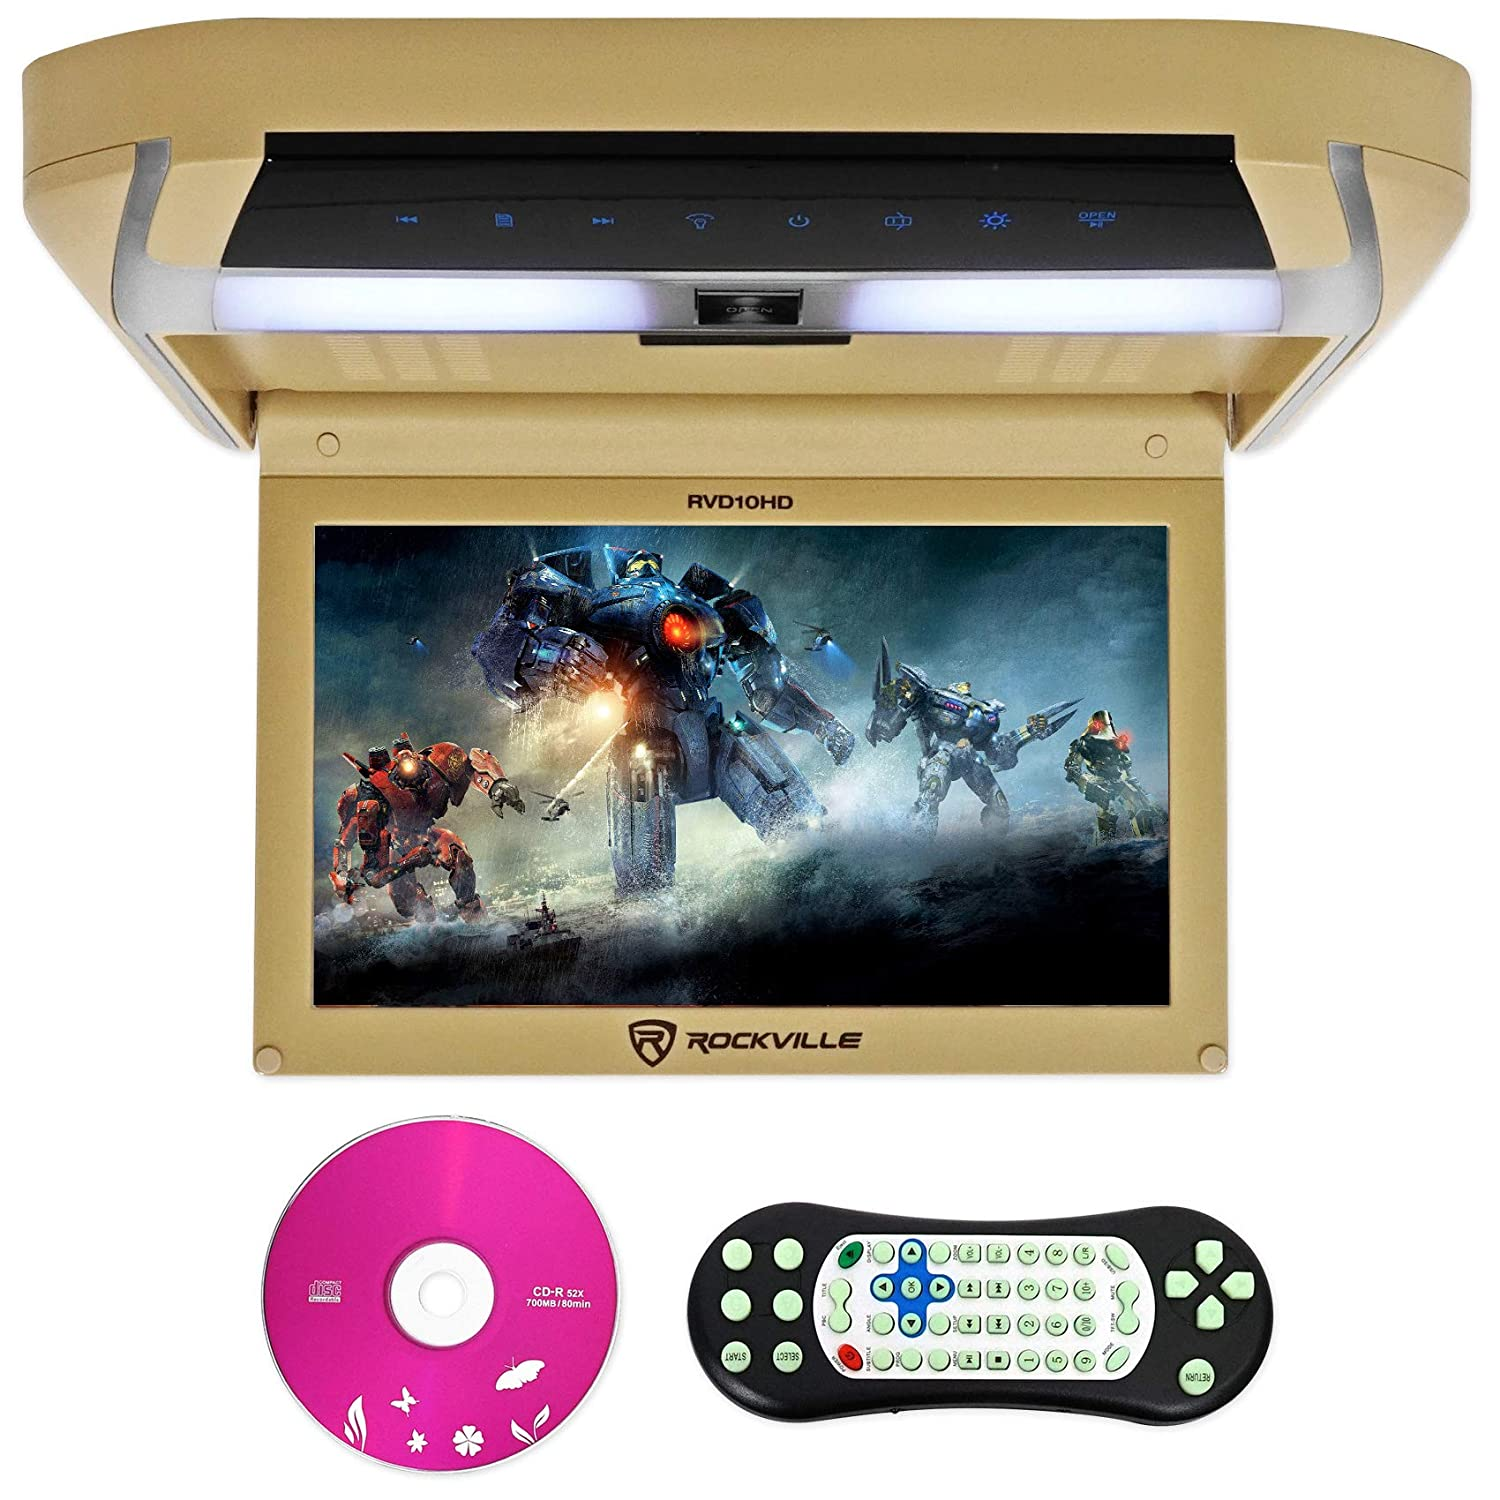 Rockville Rvd10hd Bg 101 Flip Down Monitor Dvd Player Wiring Diagrams Hdmi Usb Games Led Cell Phones Accessories